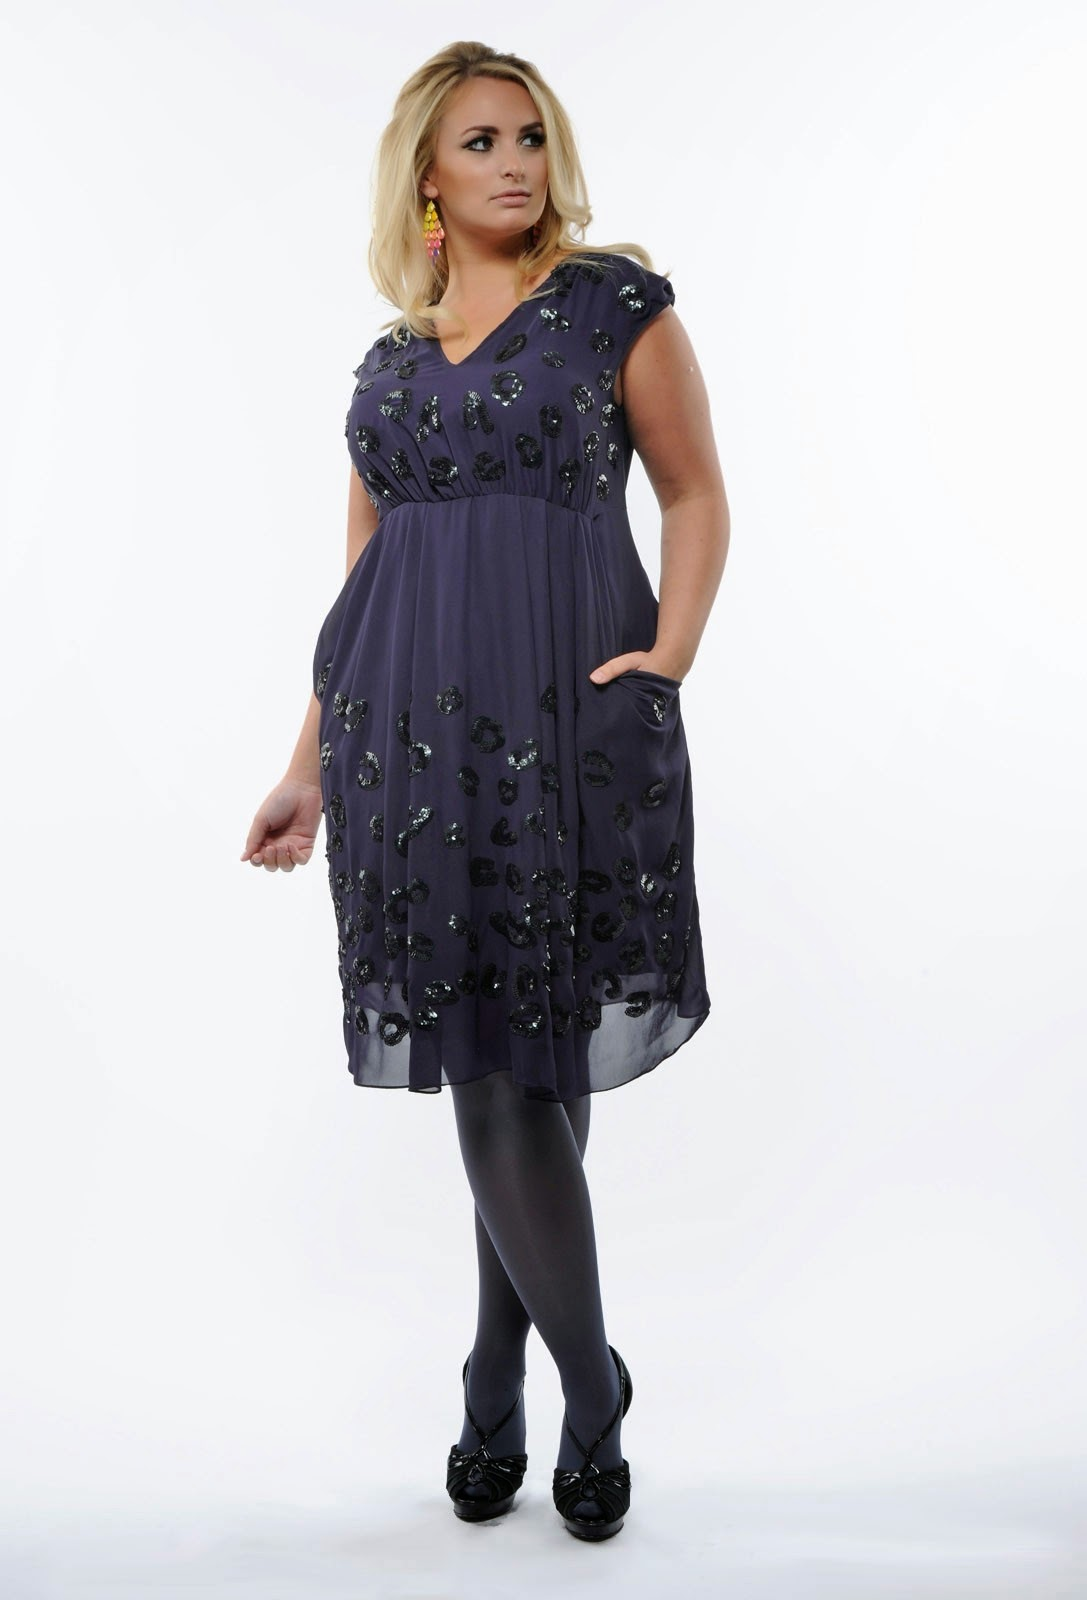 776 best images about I am not fat I am soft..... on ... |Teen Plus Size Fashion